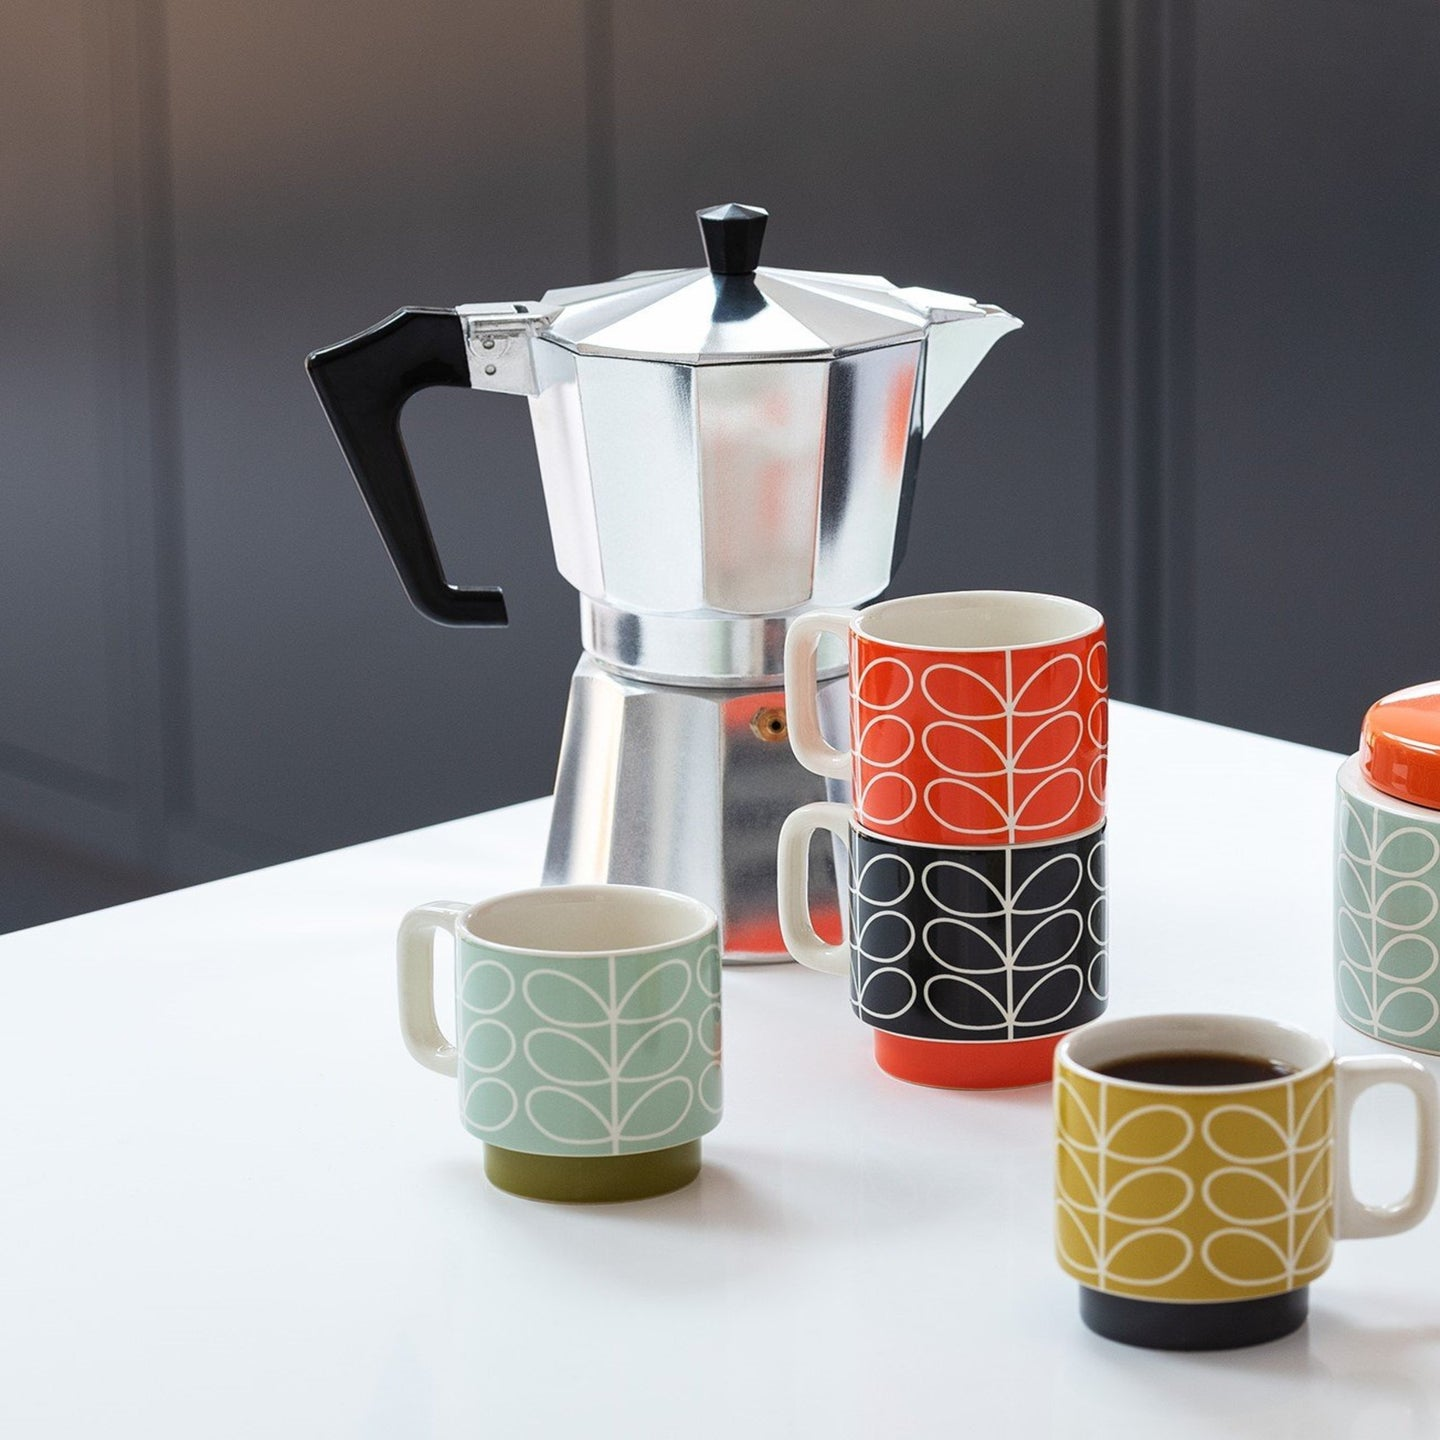 Orla Kiely Stacking Espresso Mugs